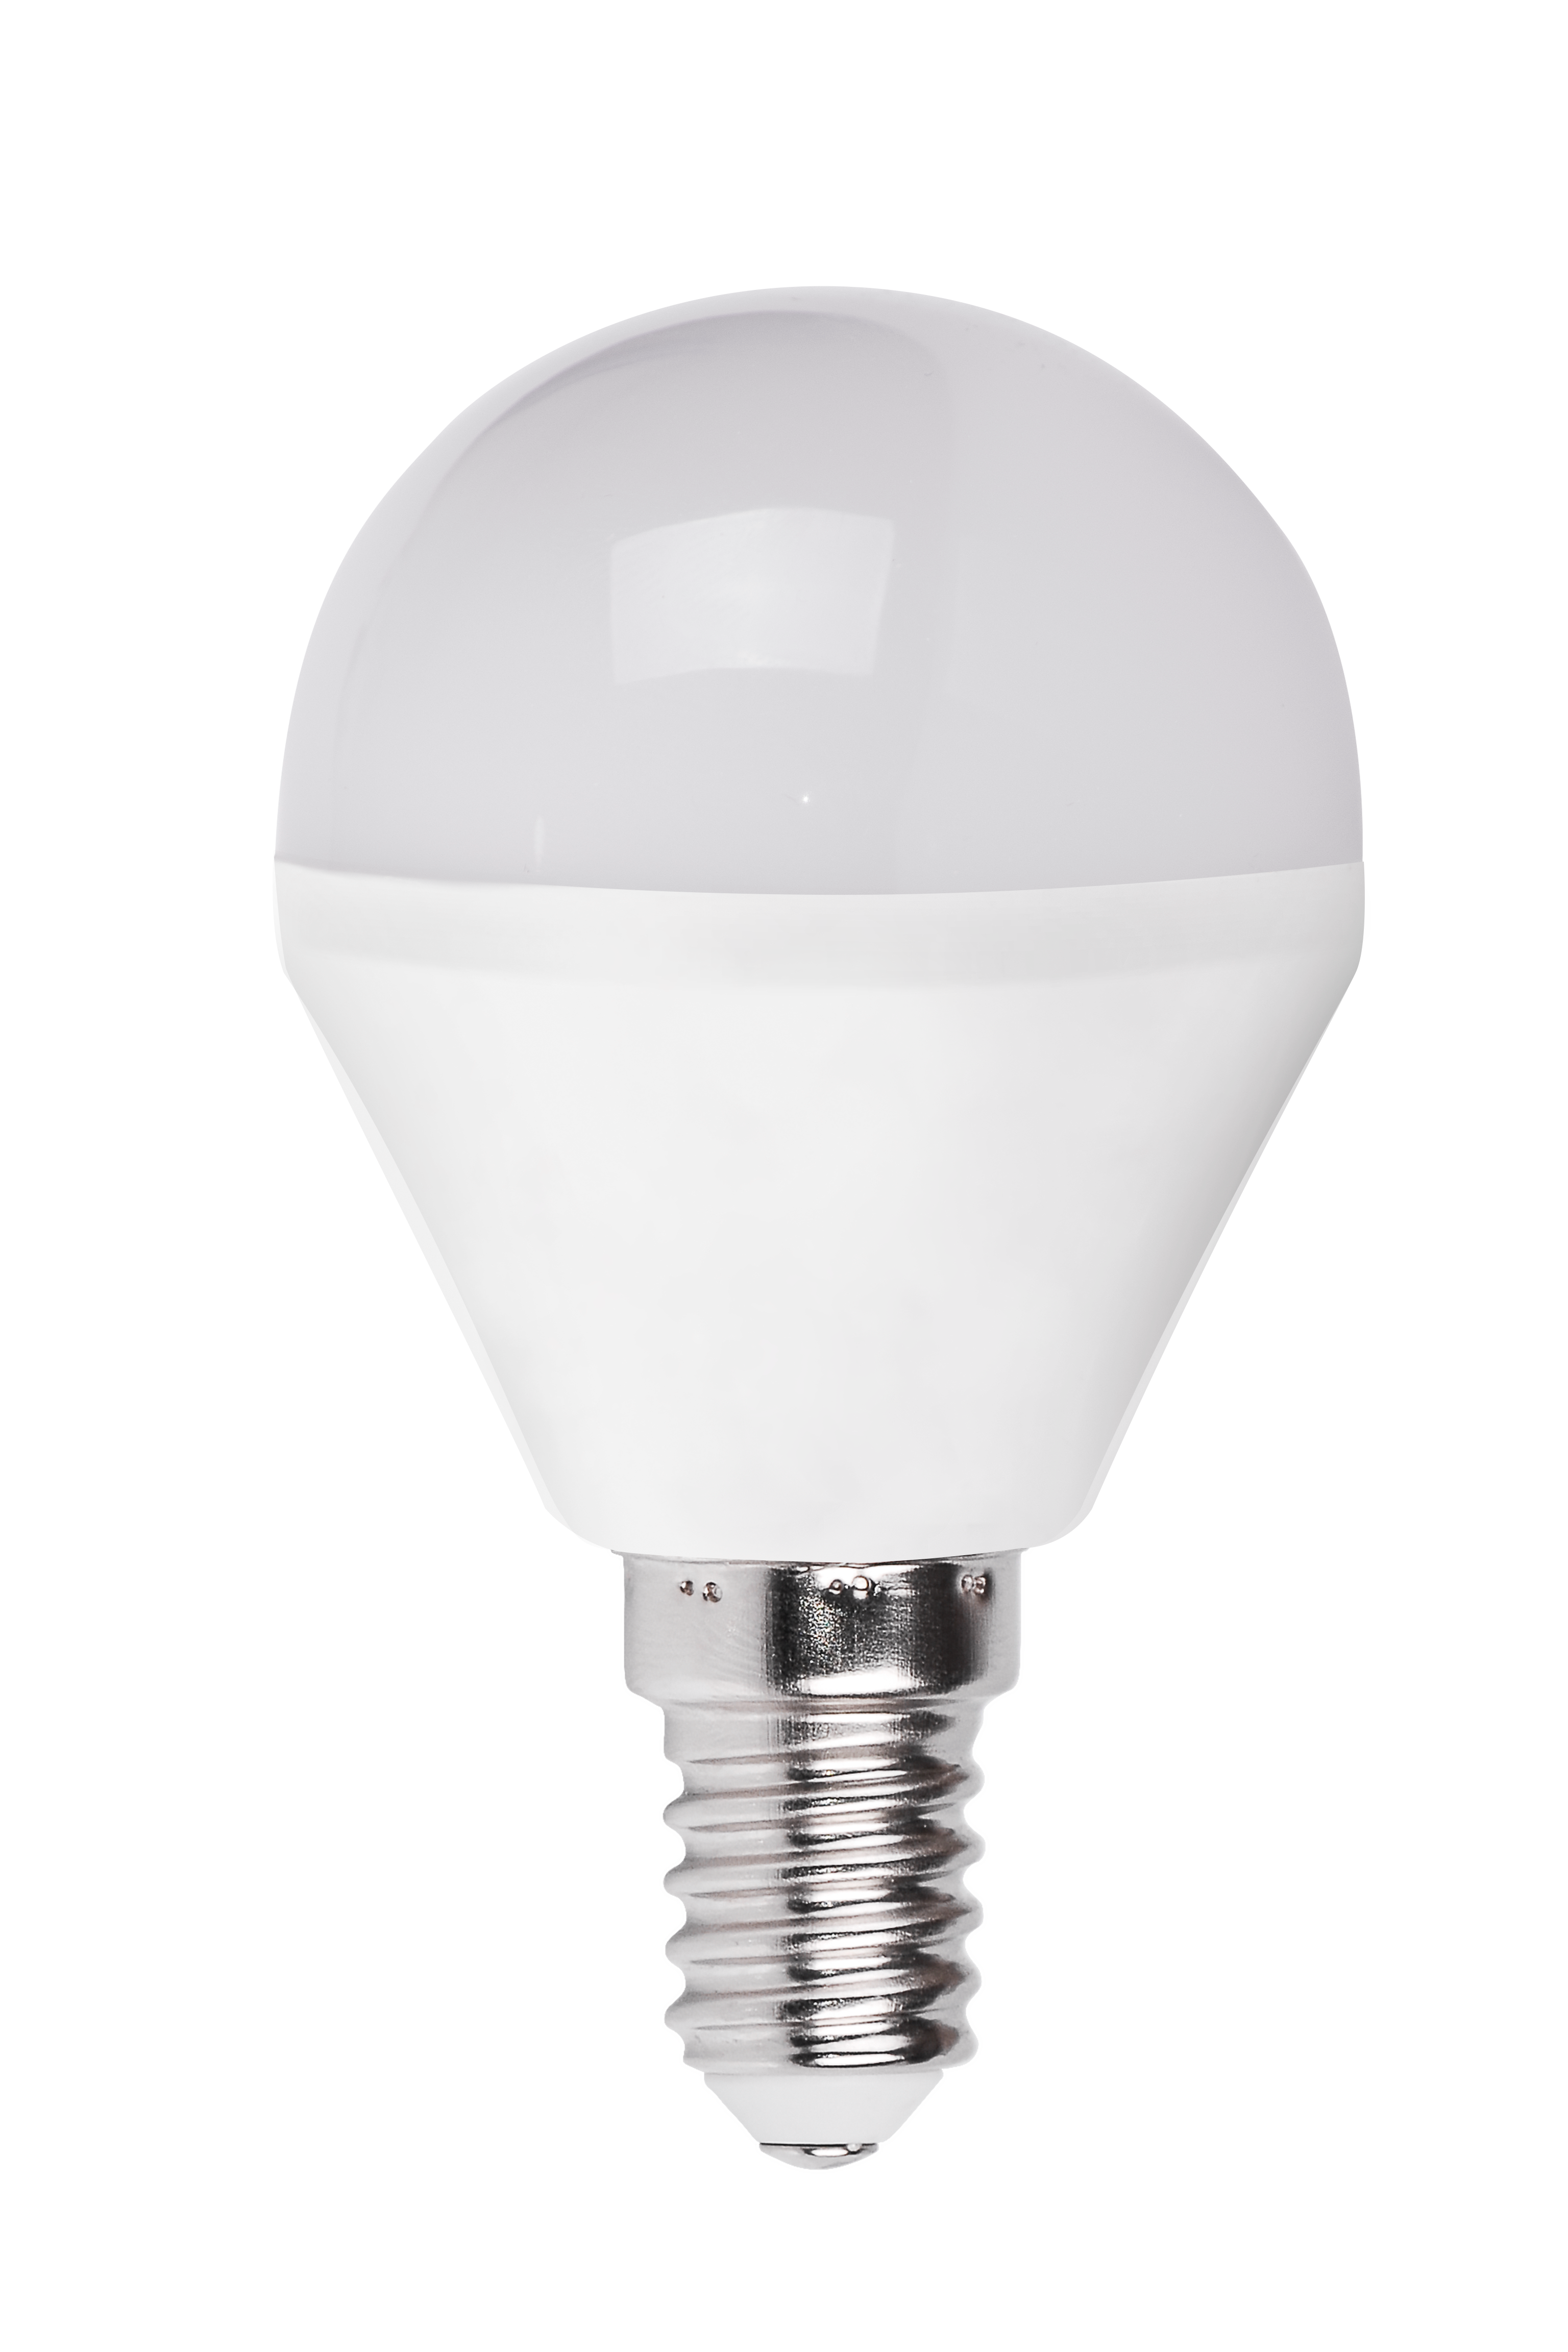 LED žárovka TB Energy E14 230, 5,5W, 450lm